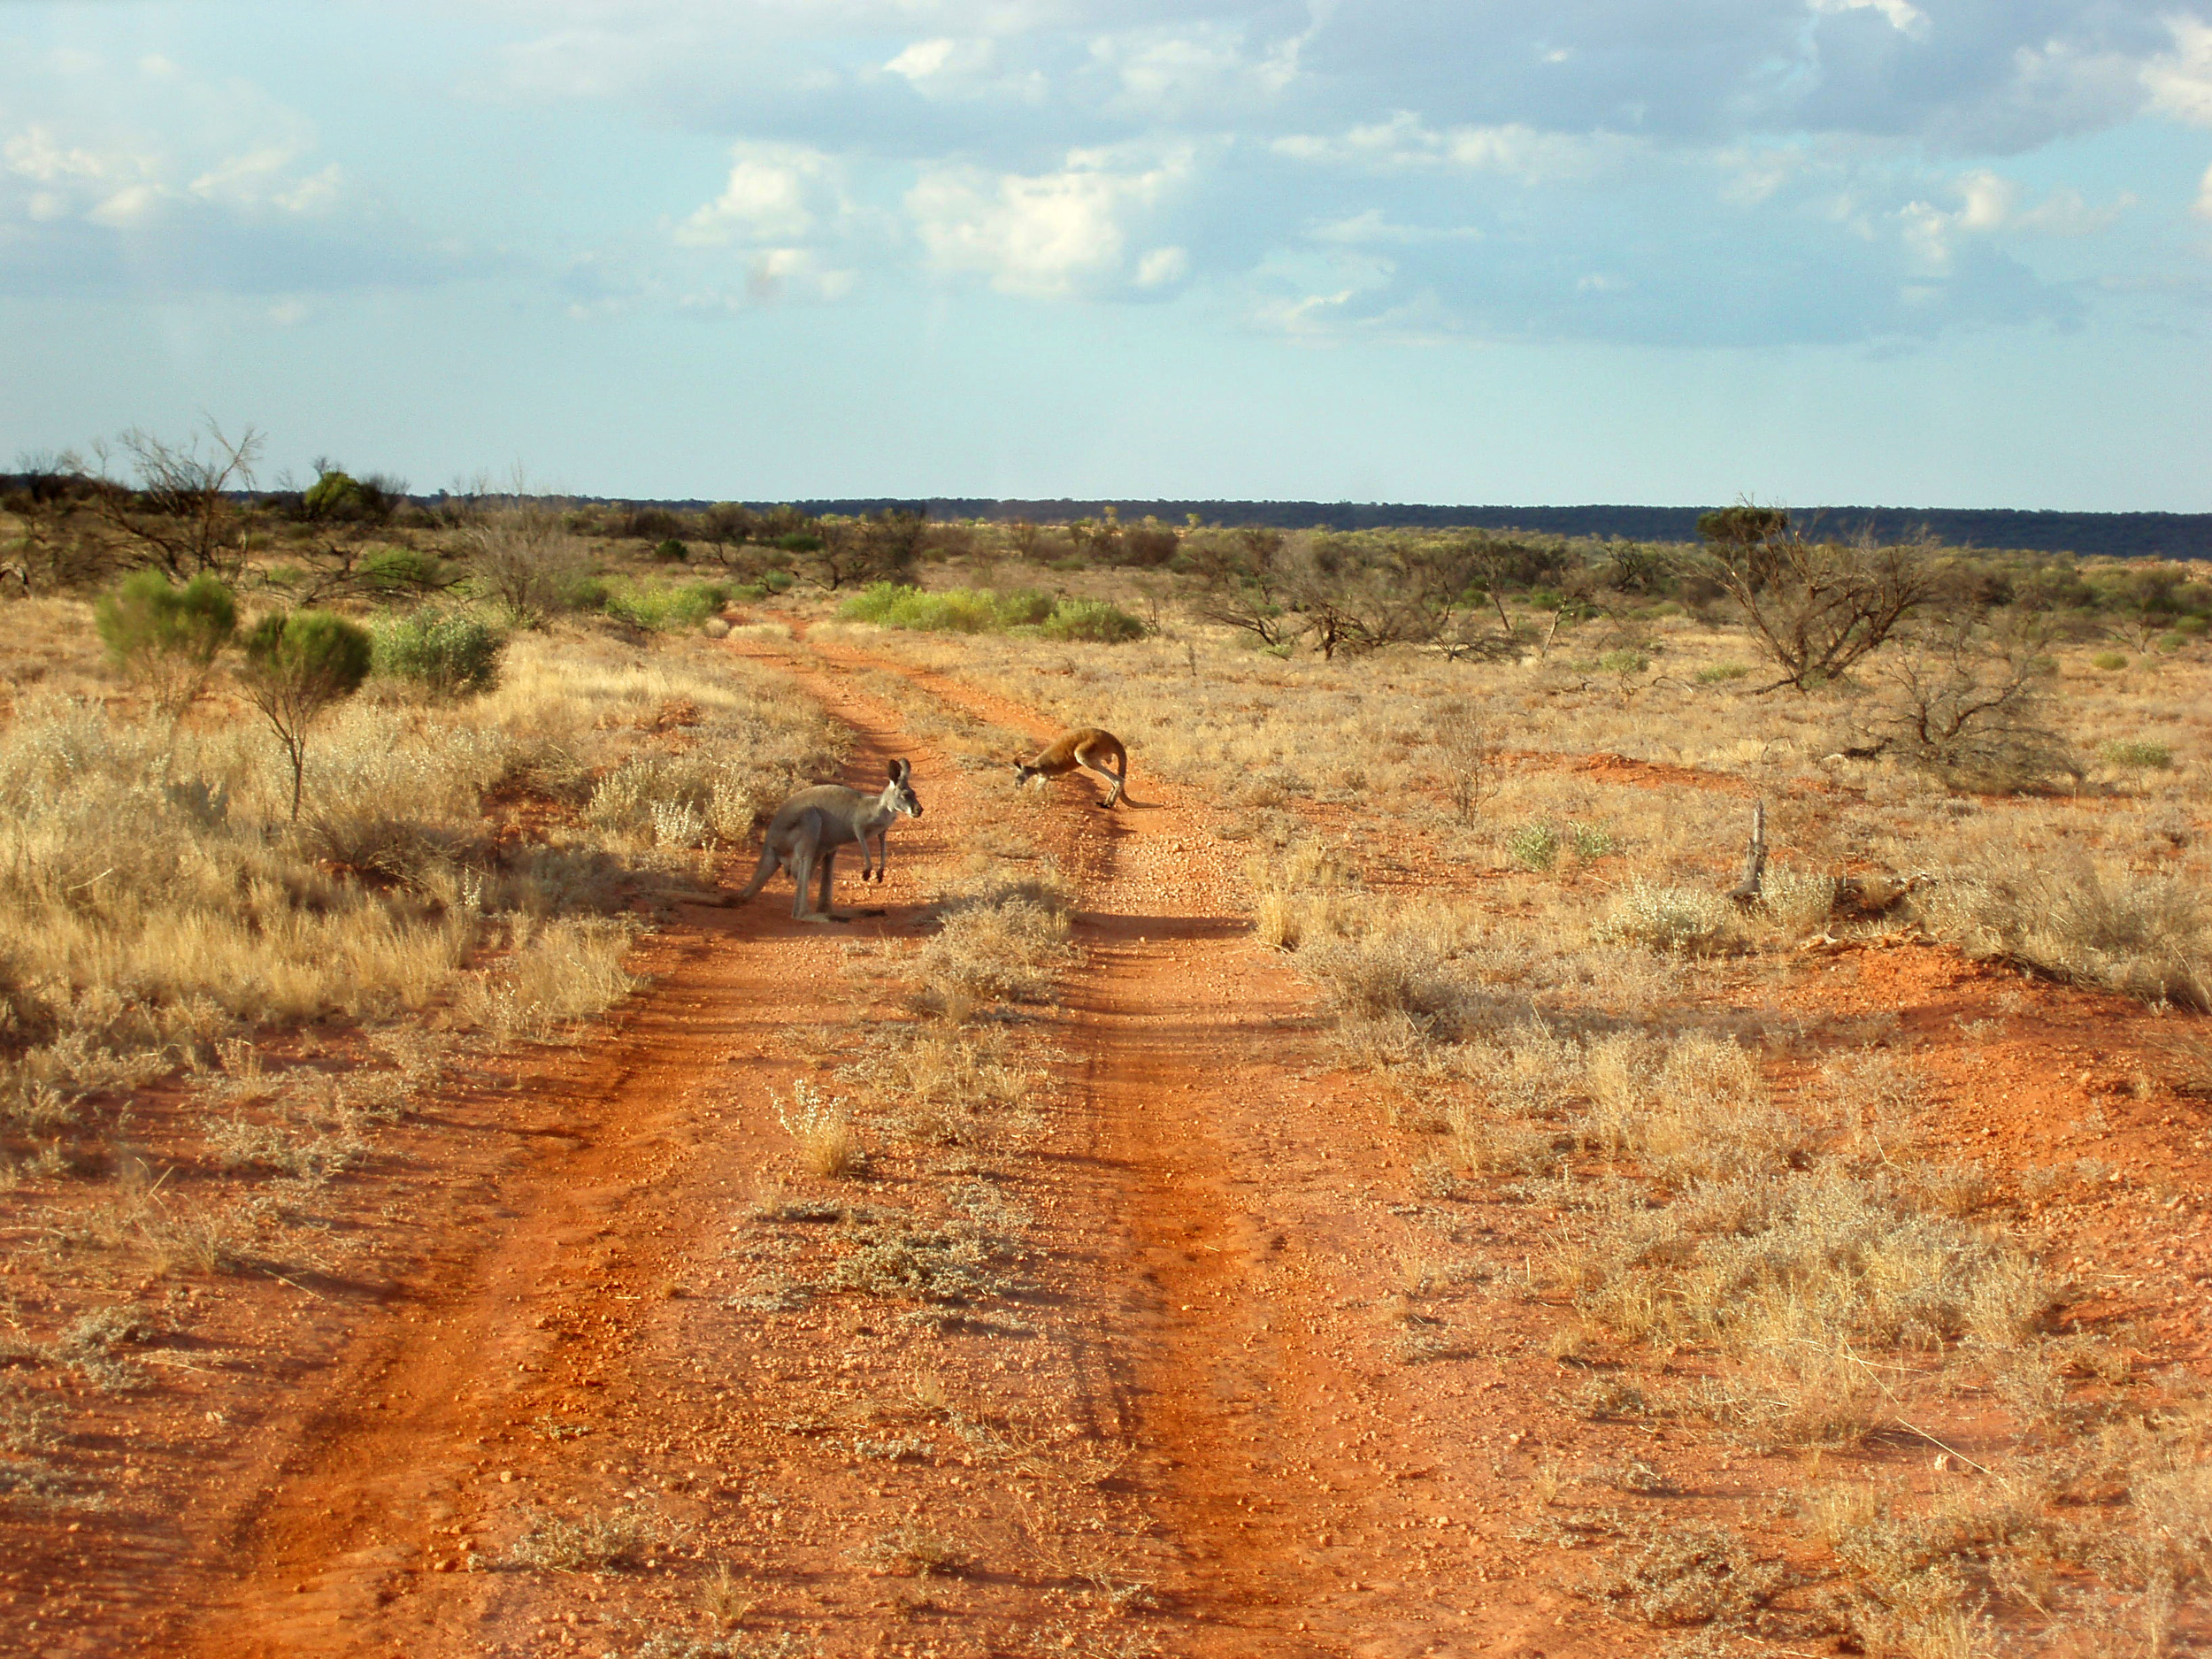 a couple of kangaroos on a remote outback 4x4 track